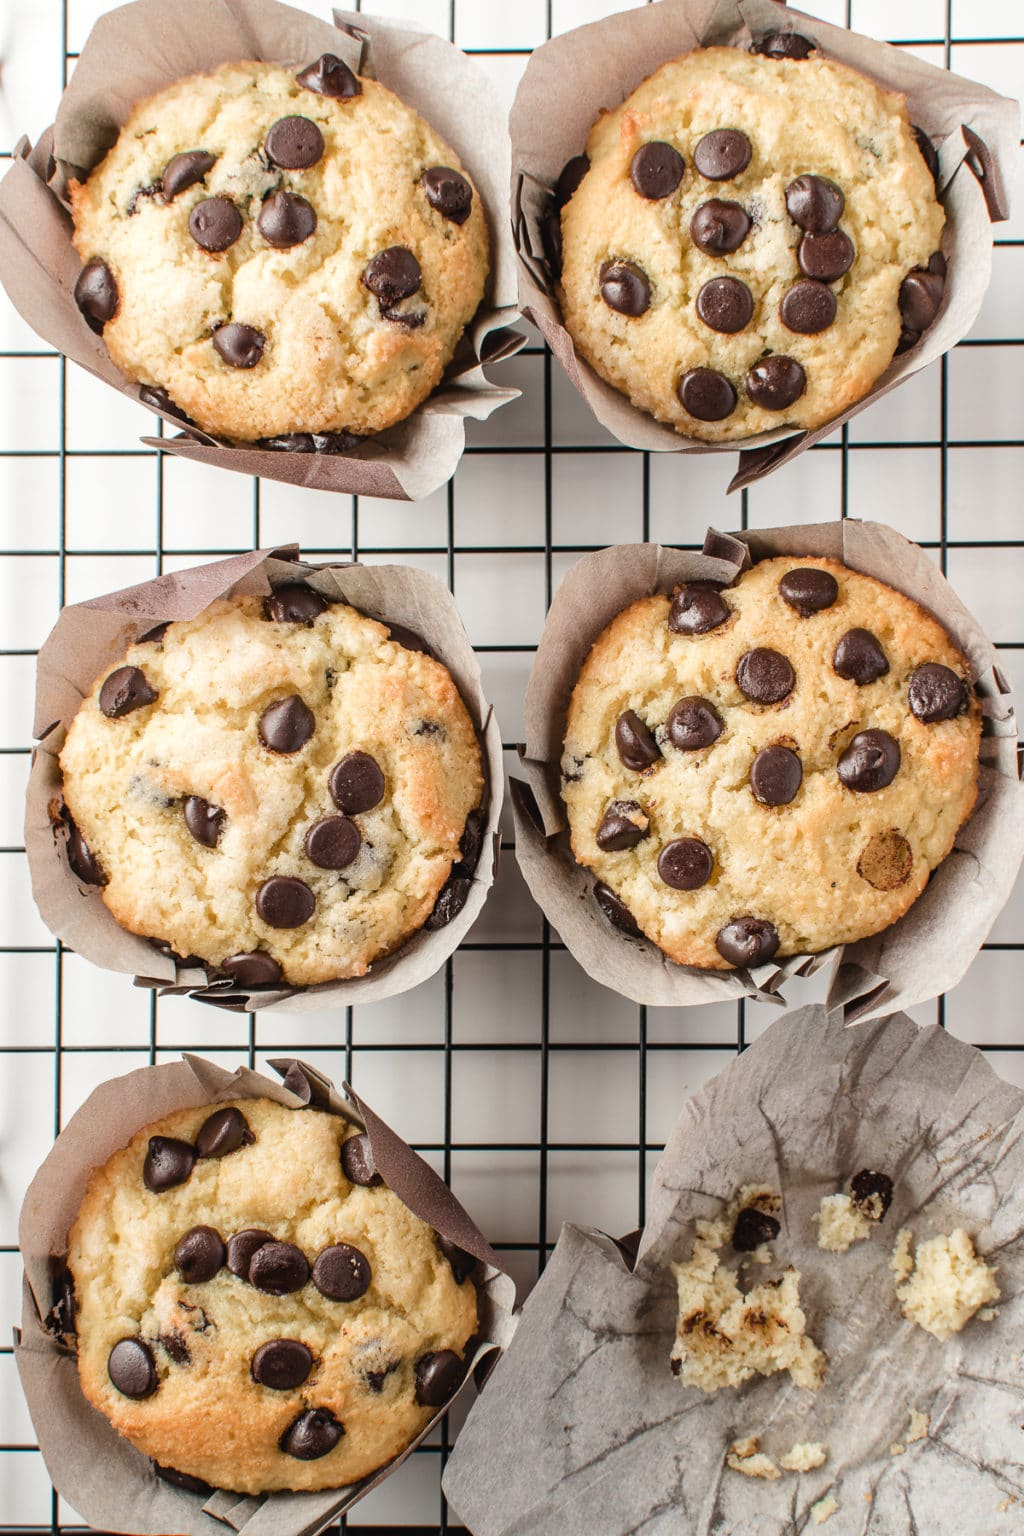 6 bakery style chocolate chip muffins on a black grid cooling rack with one muffin missing leaving only crumbs behind.